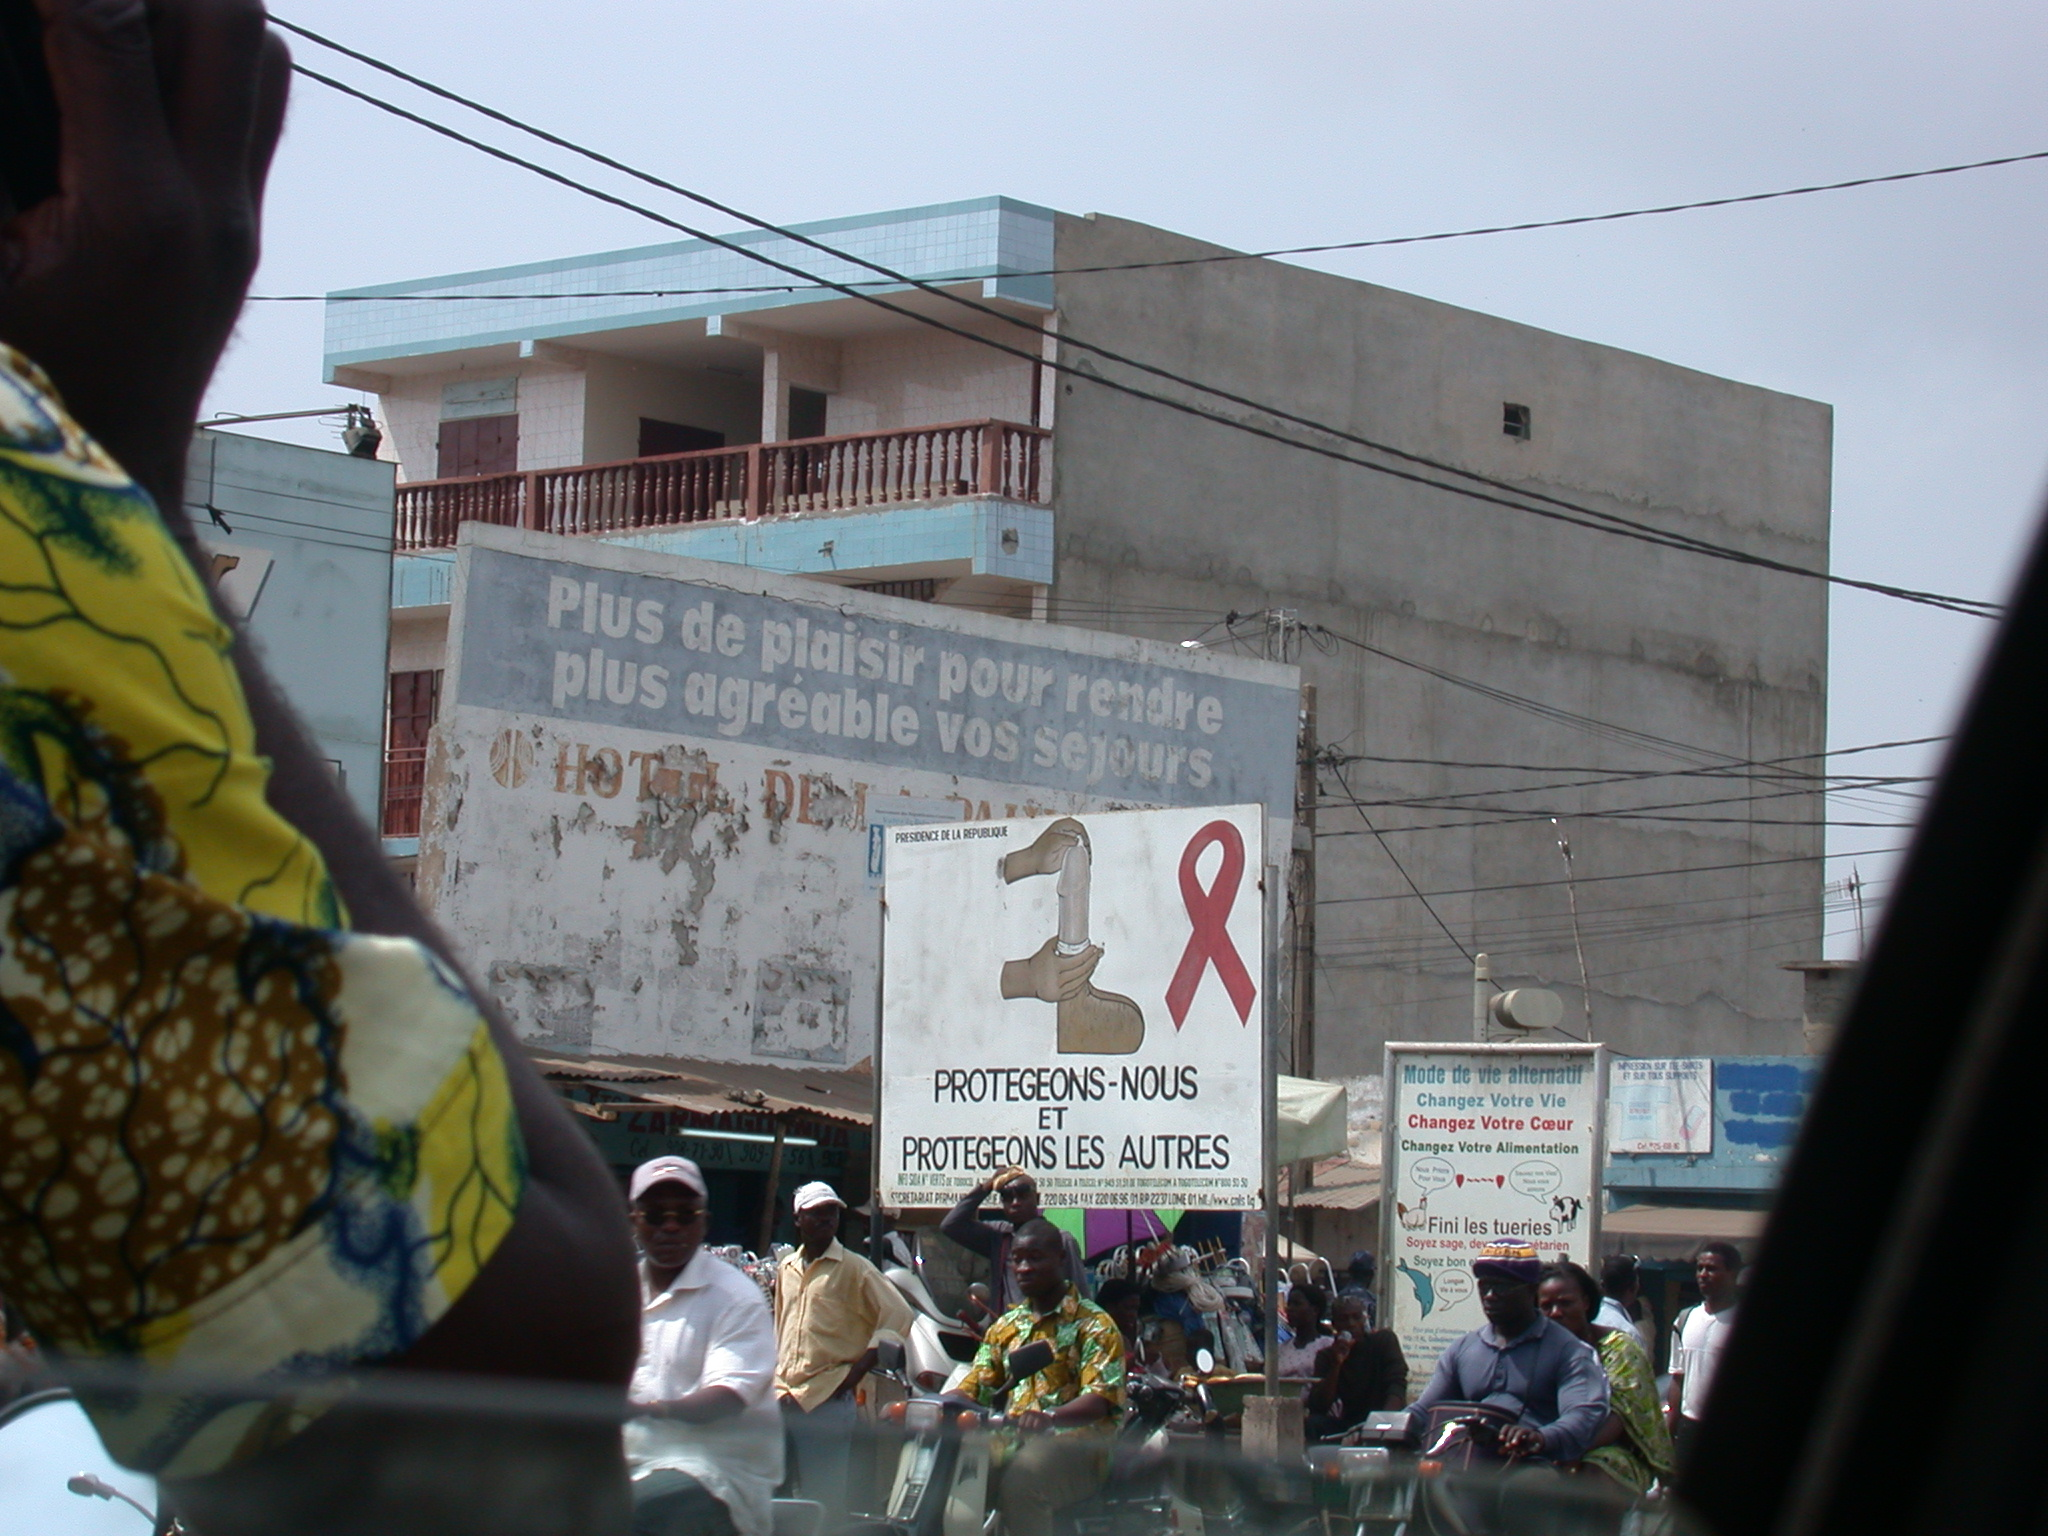 Protect Ourselves and Protect Others, AIDS Prevention Campaign Billboard, Lome, Togo